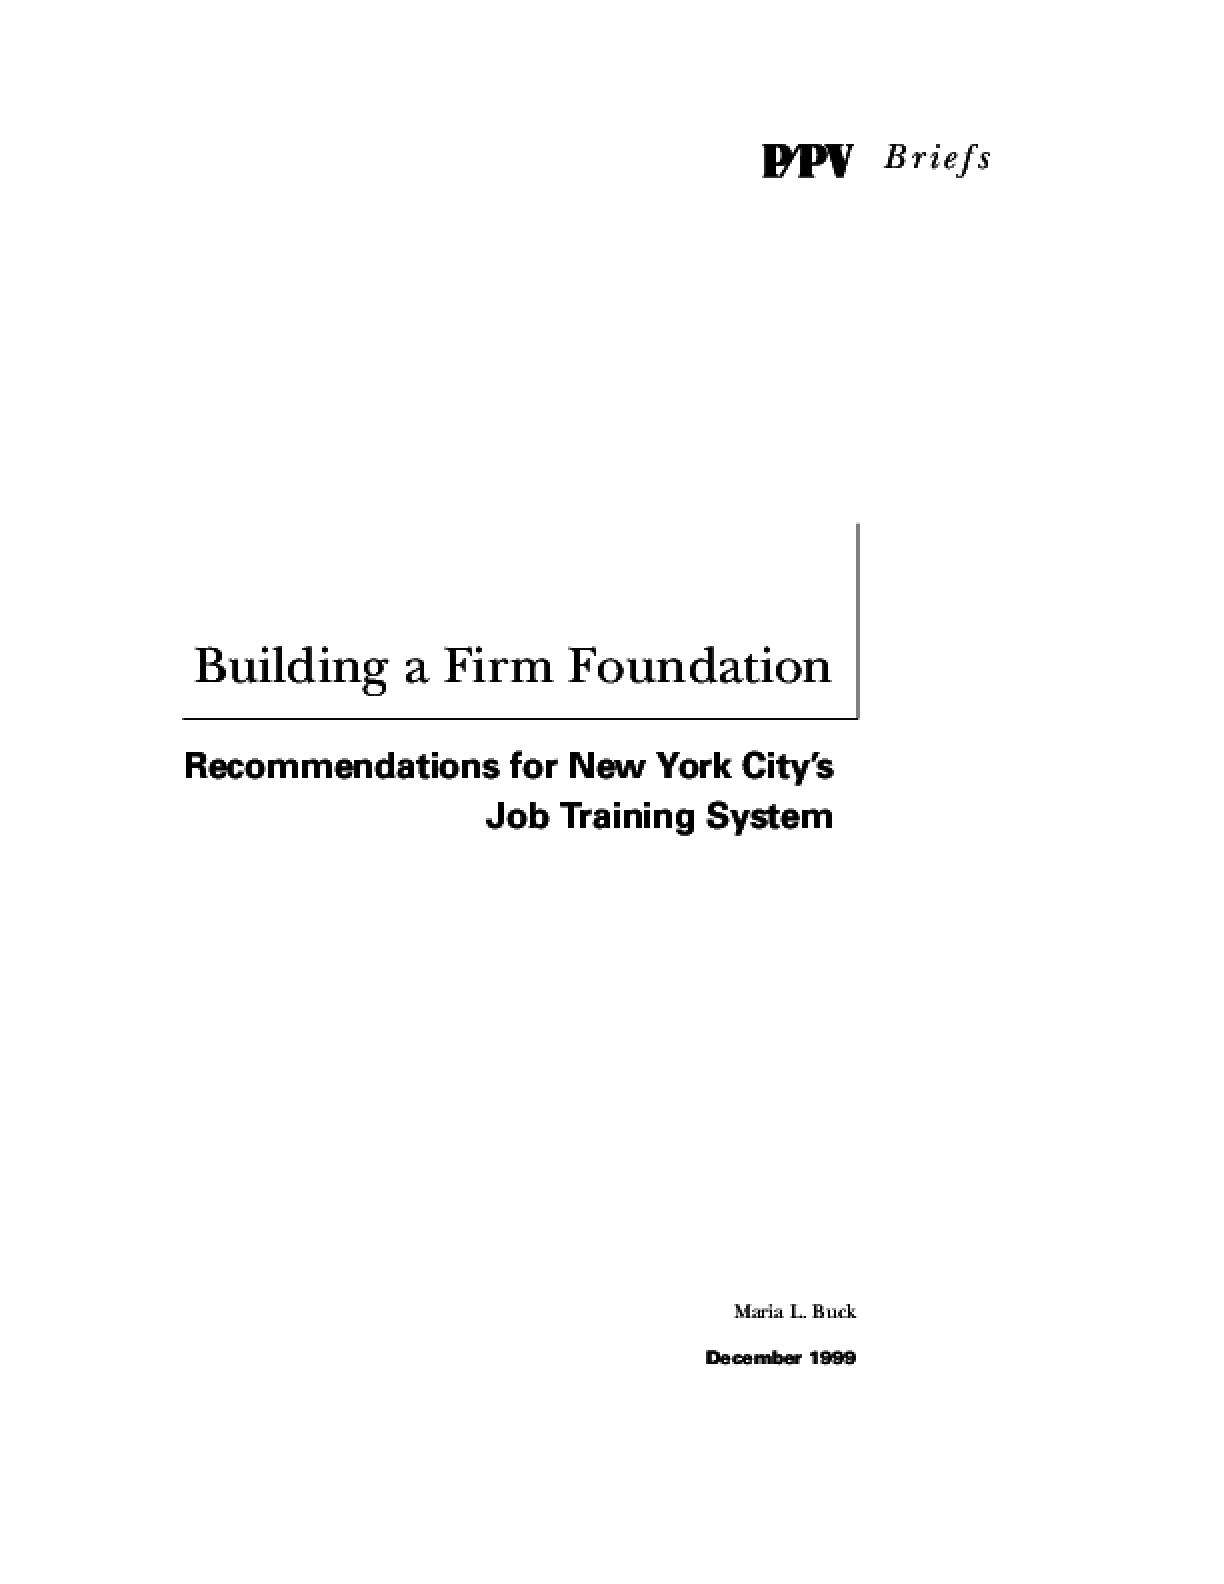 Building a Firm Foundation: Recommendations for New York City's Job Training System